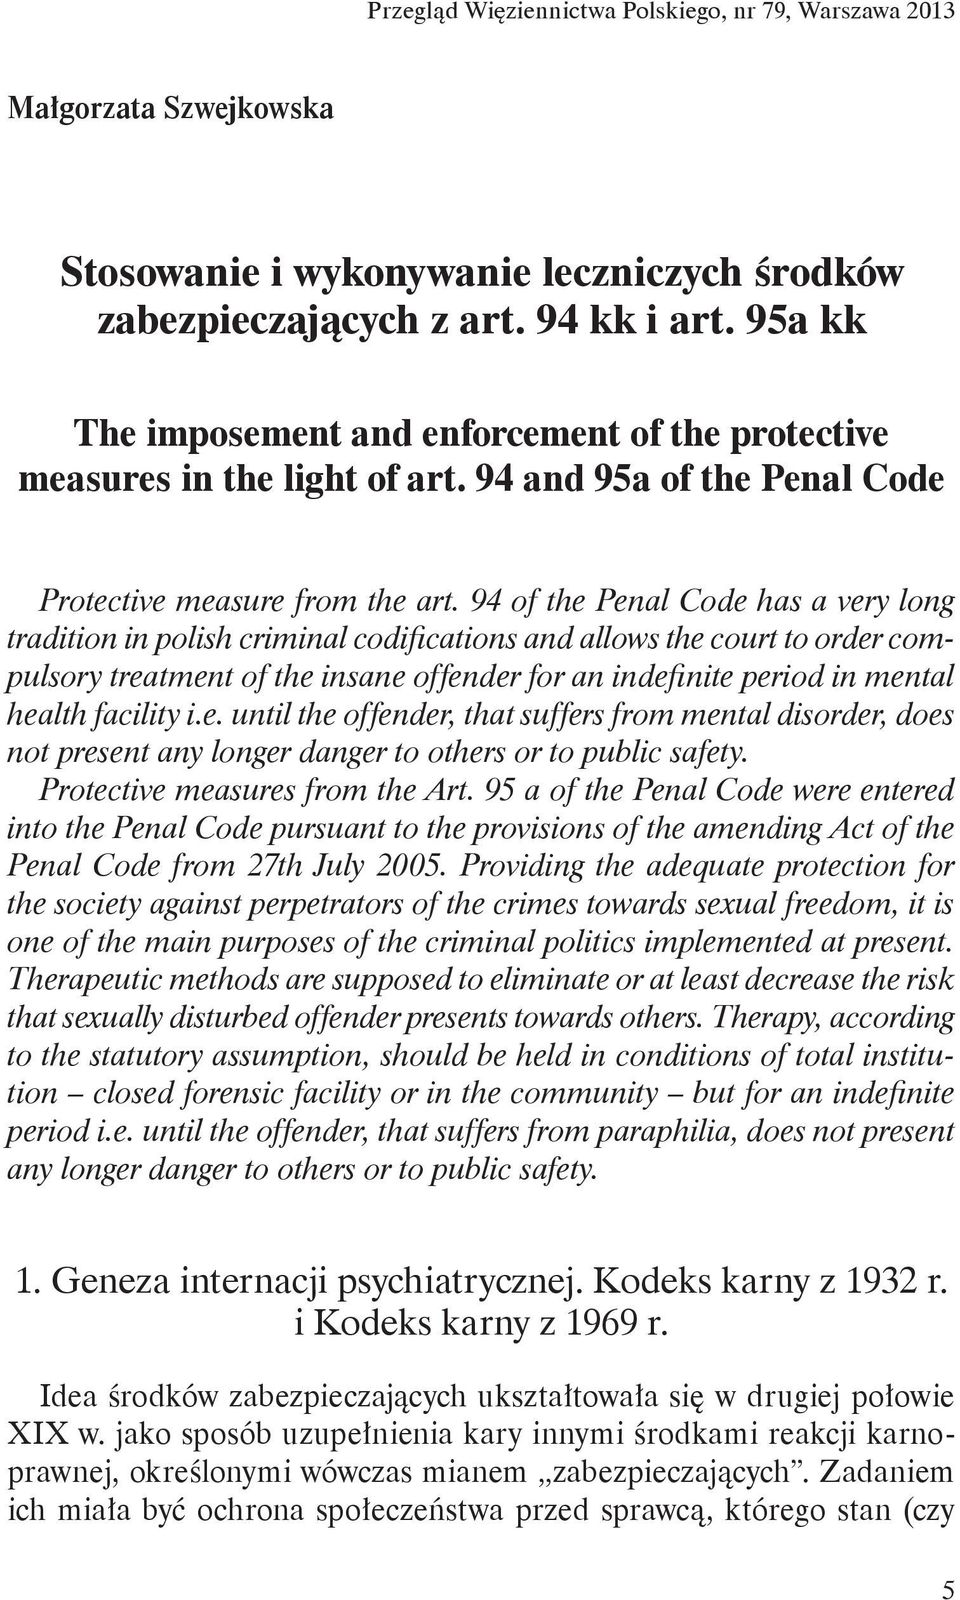 94 of the Penal Code has a very long tradition in polish criminal codifications and allows the court to order compulsory treatment of the insane offender for an indefinite period in mental health